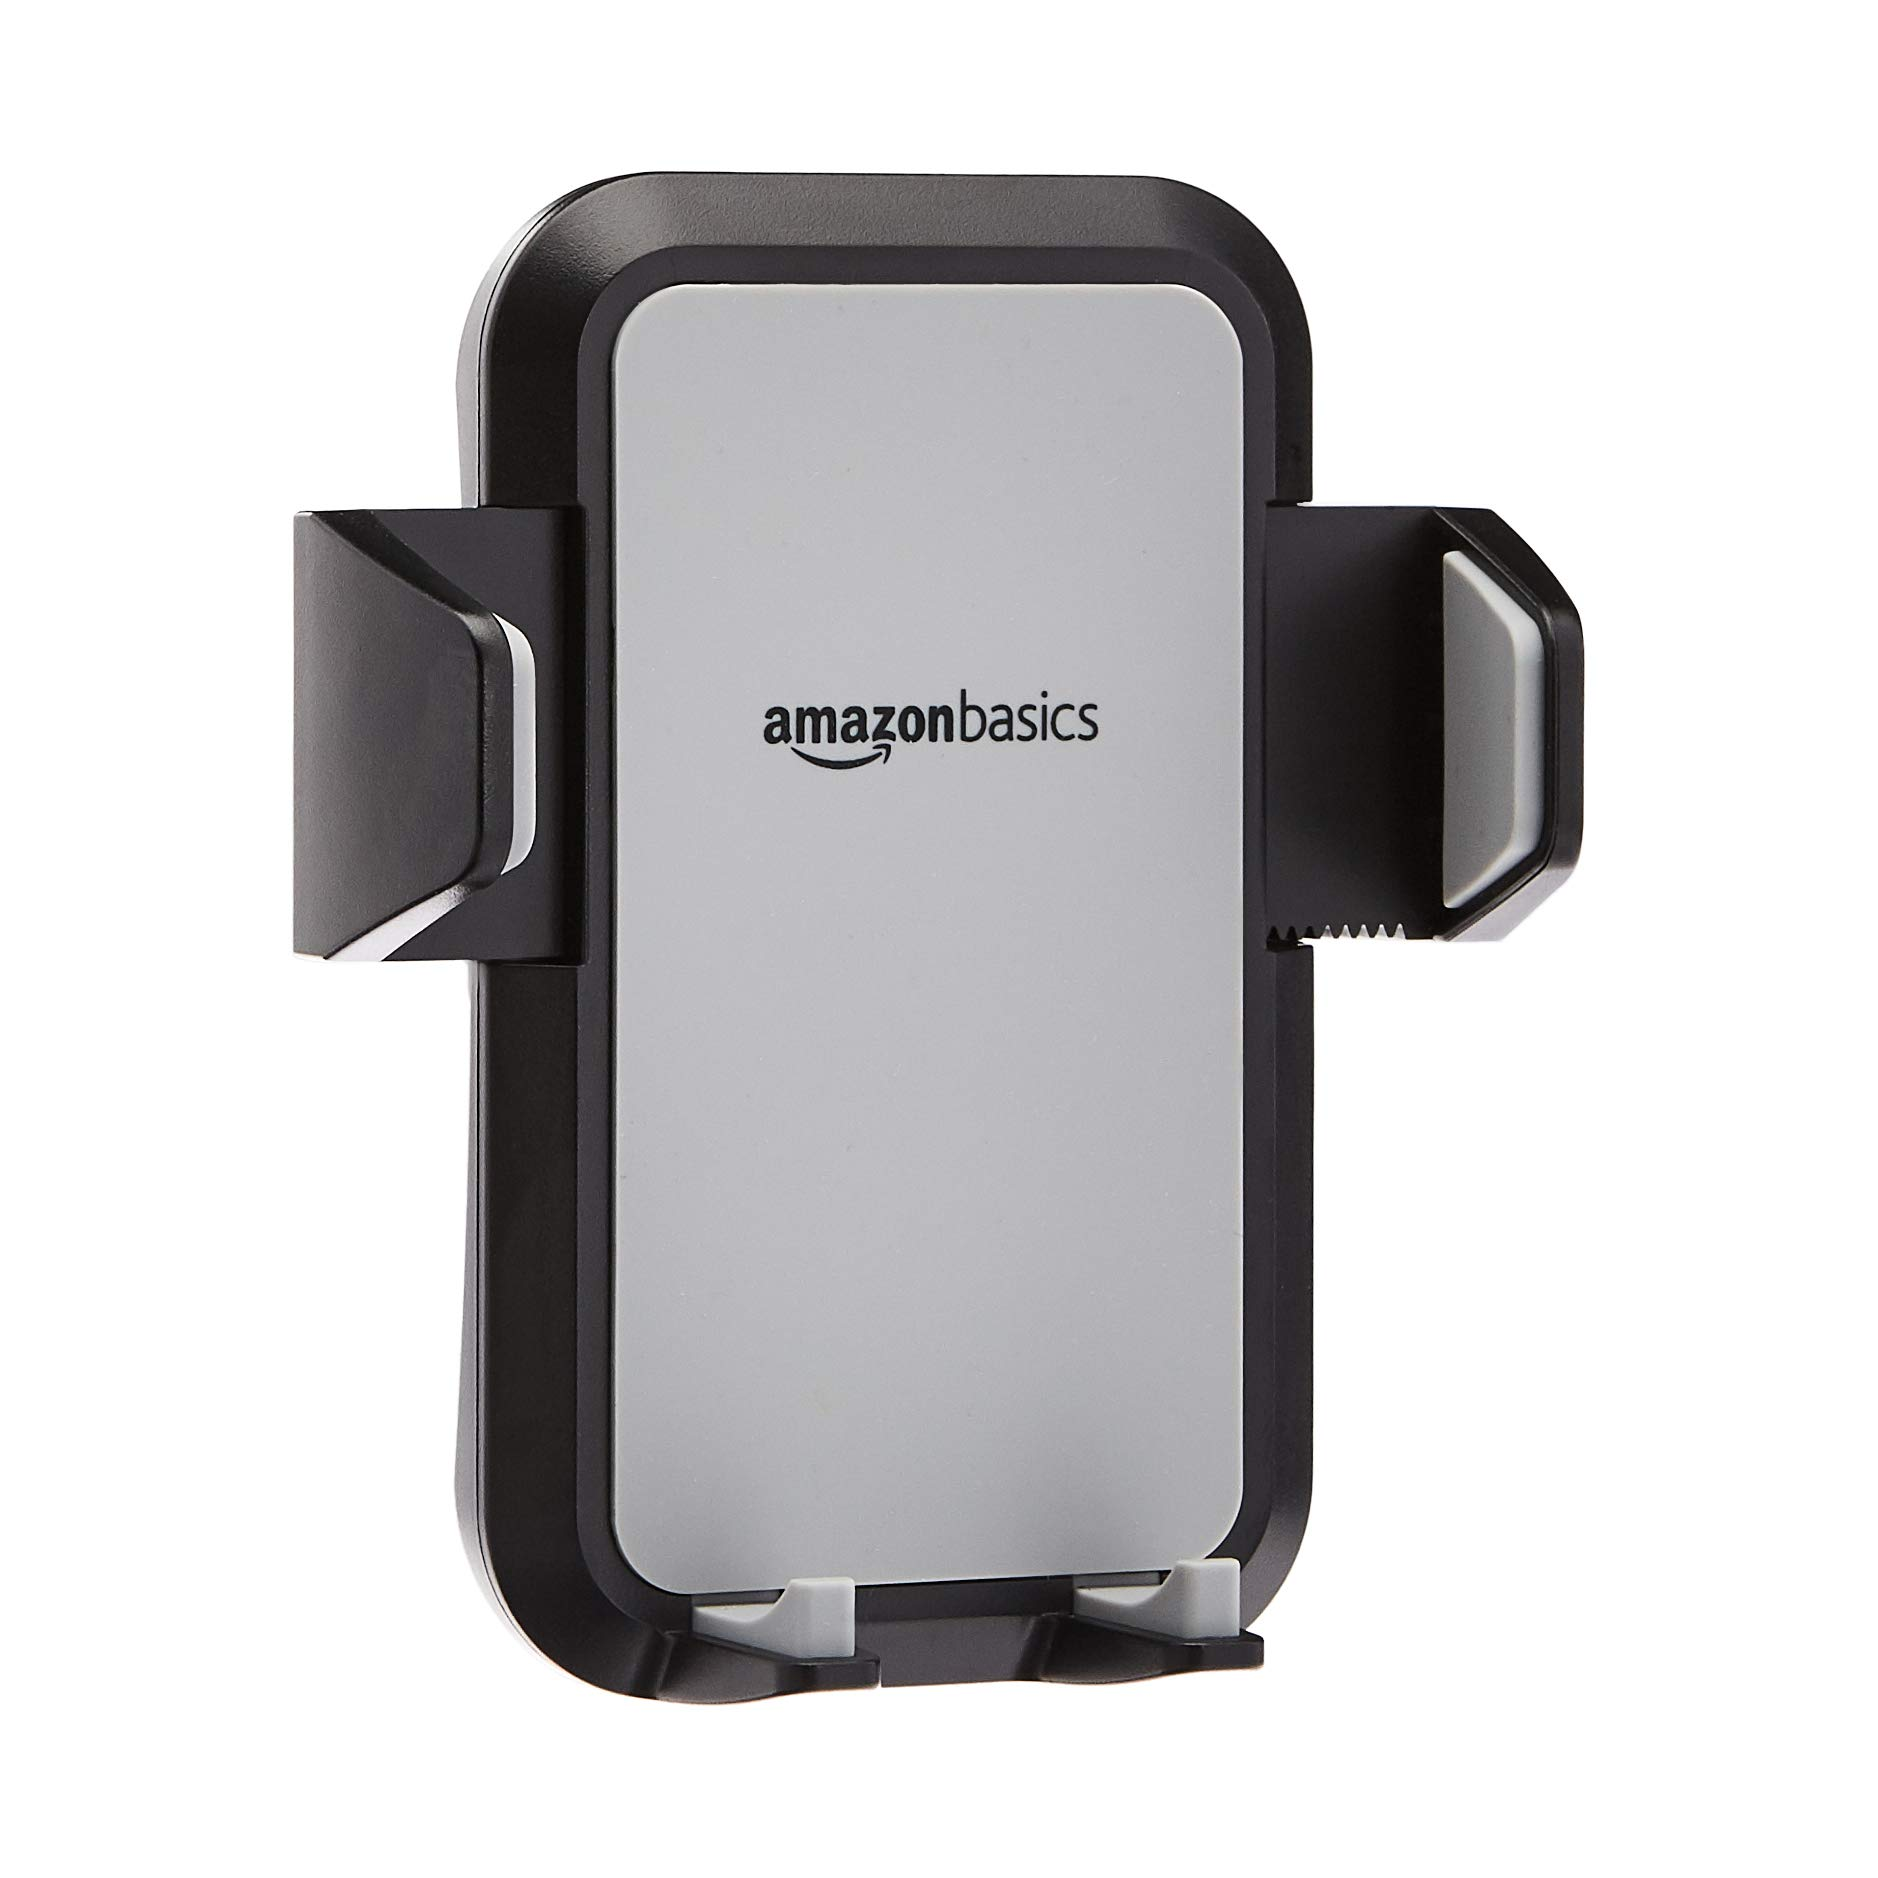 Amazon Basics Universal Smartphone Holder for Car Air Vent